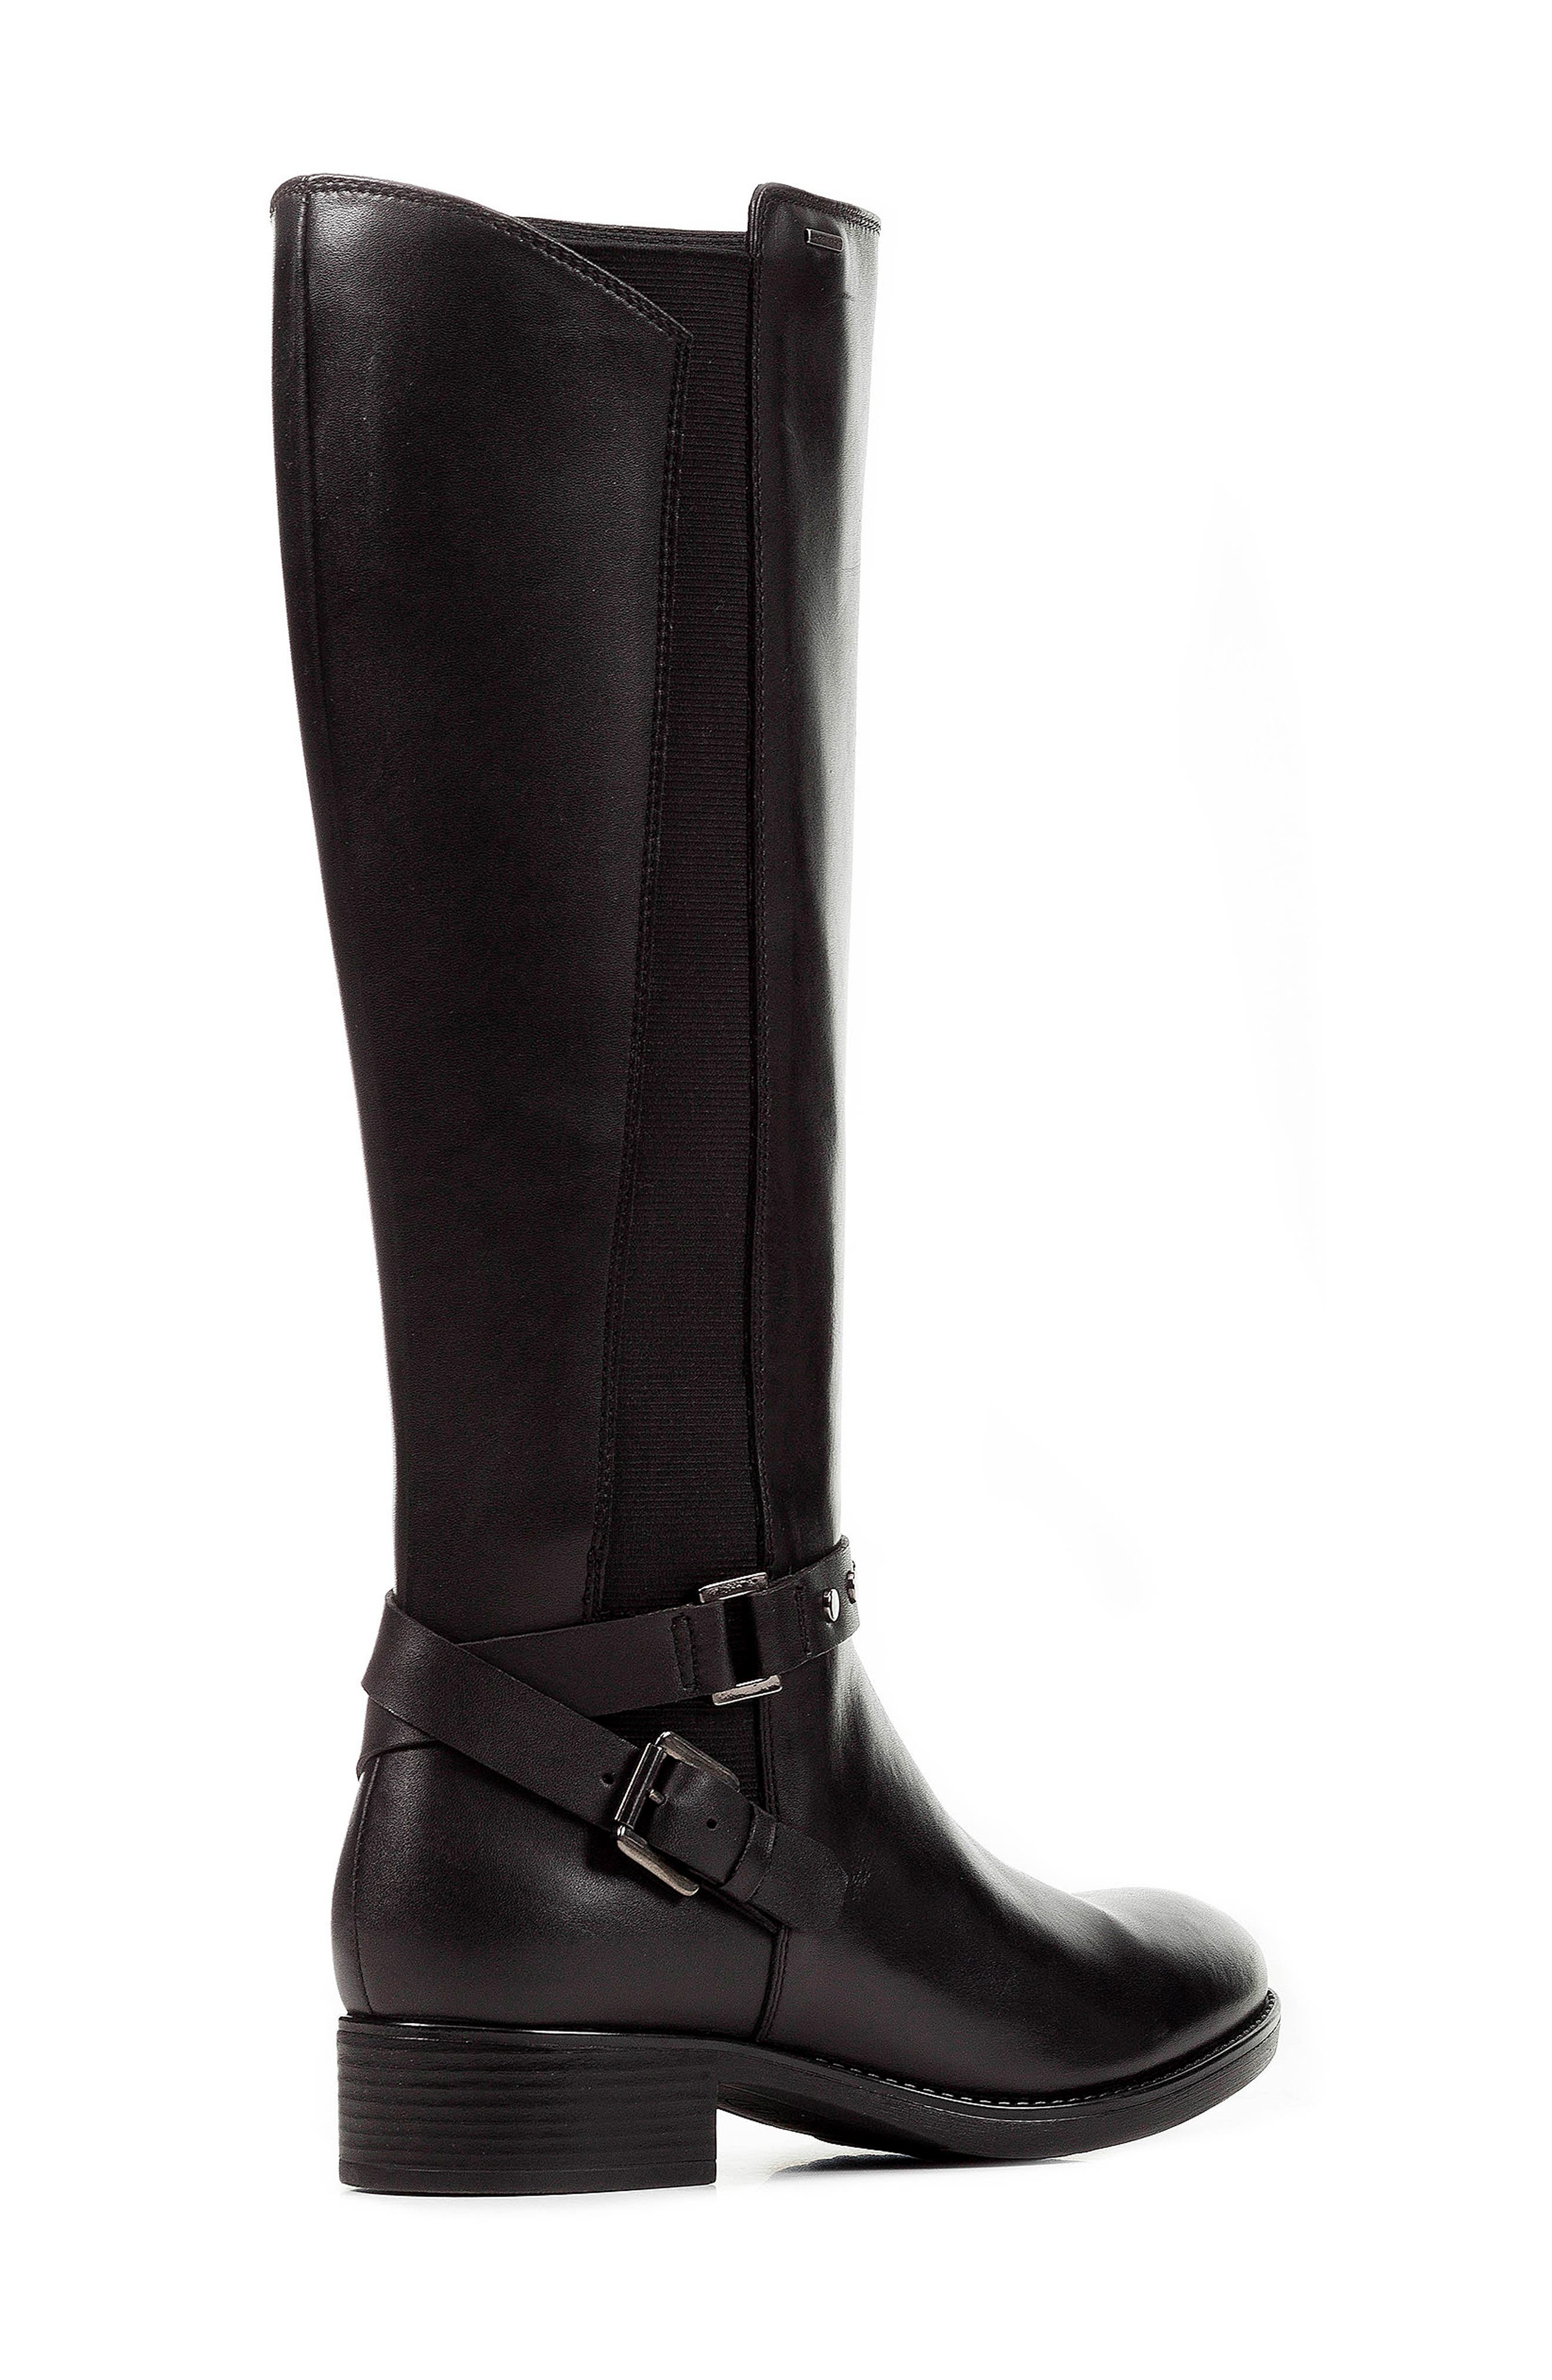 Felicity ABX Waterproof Knee High Riding Boot,                             Alternate thumbnail 7, color,                             BLACK LEATHER